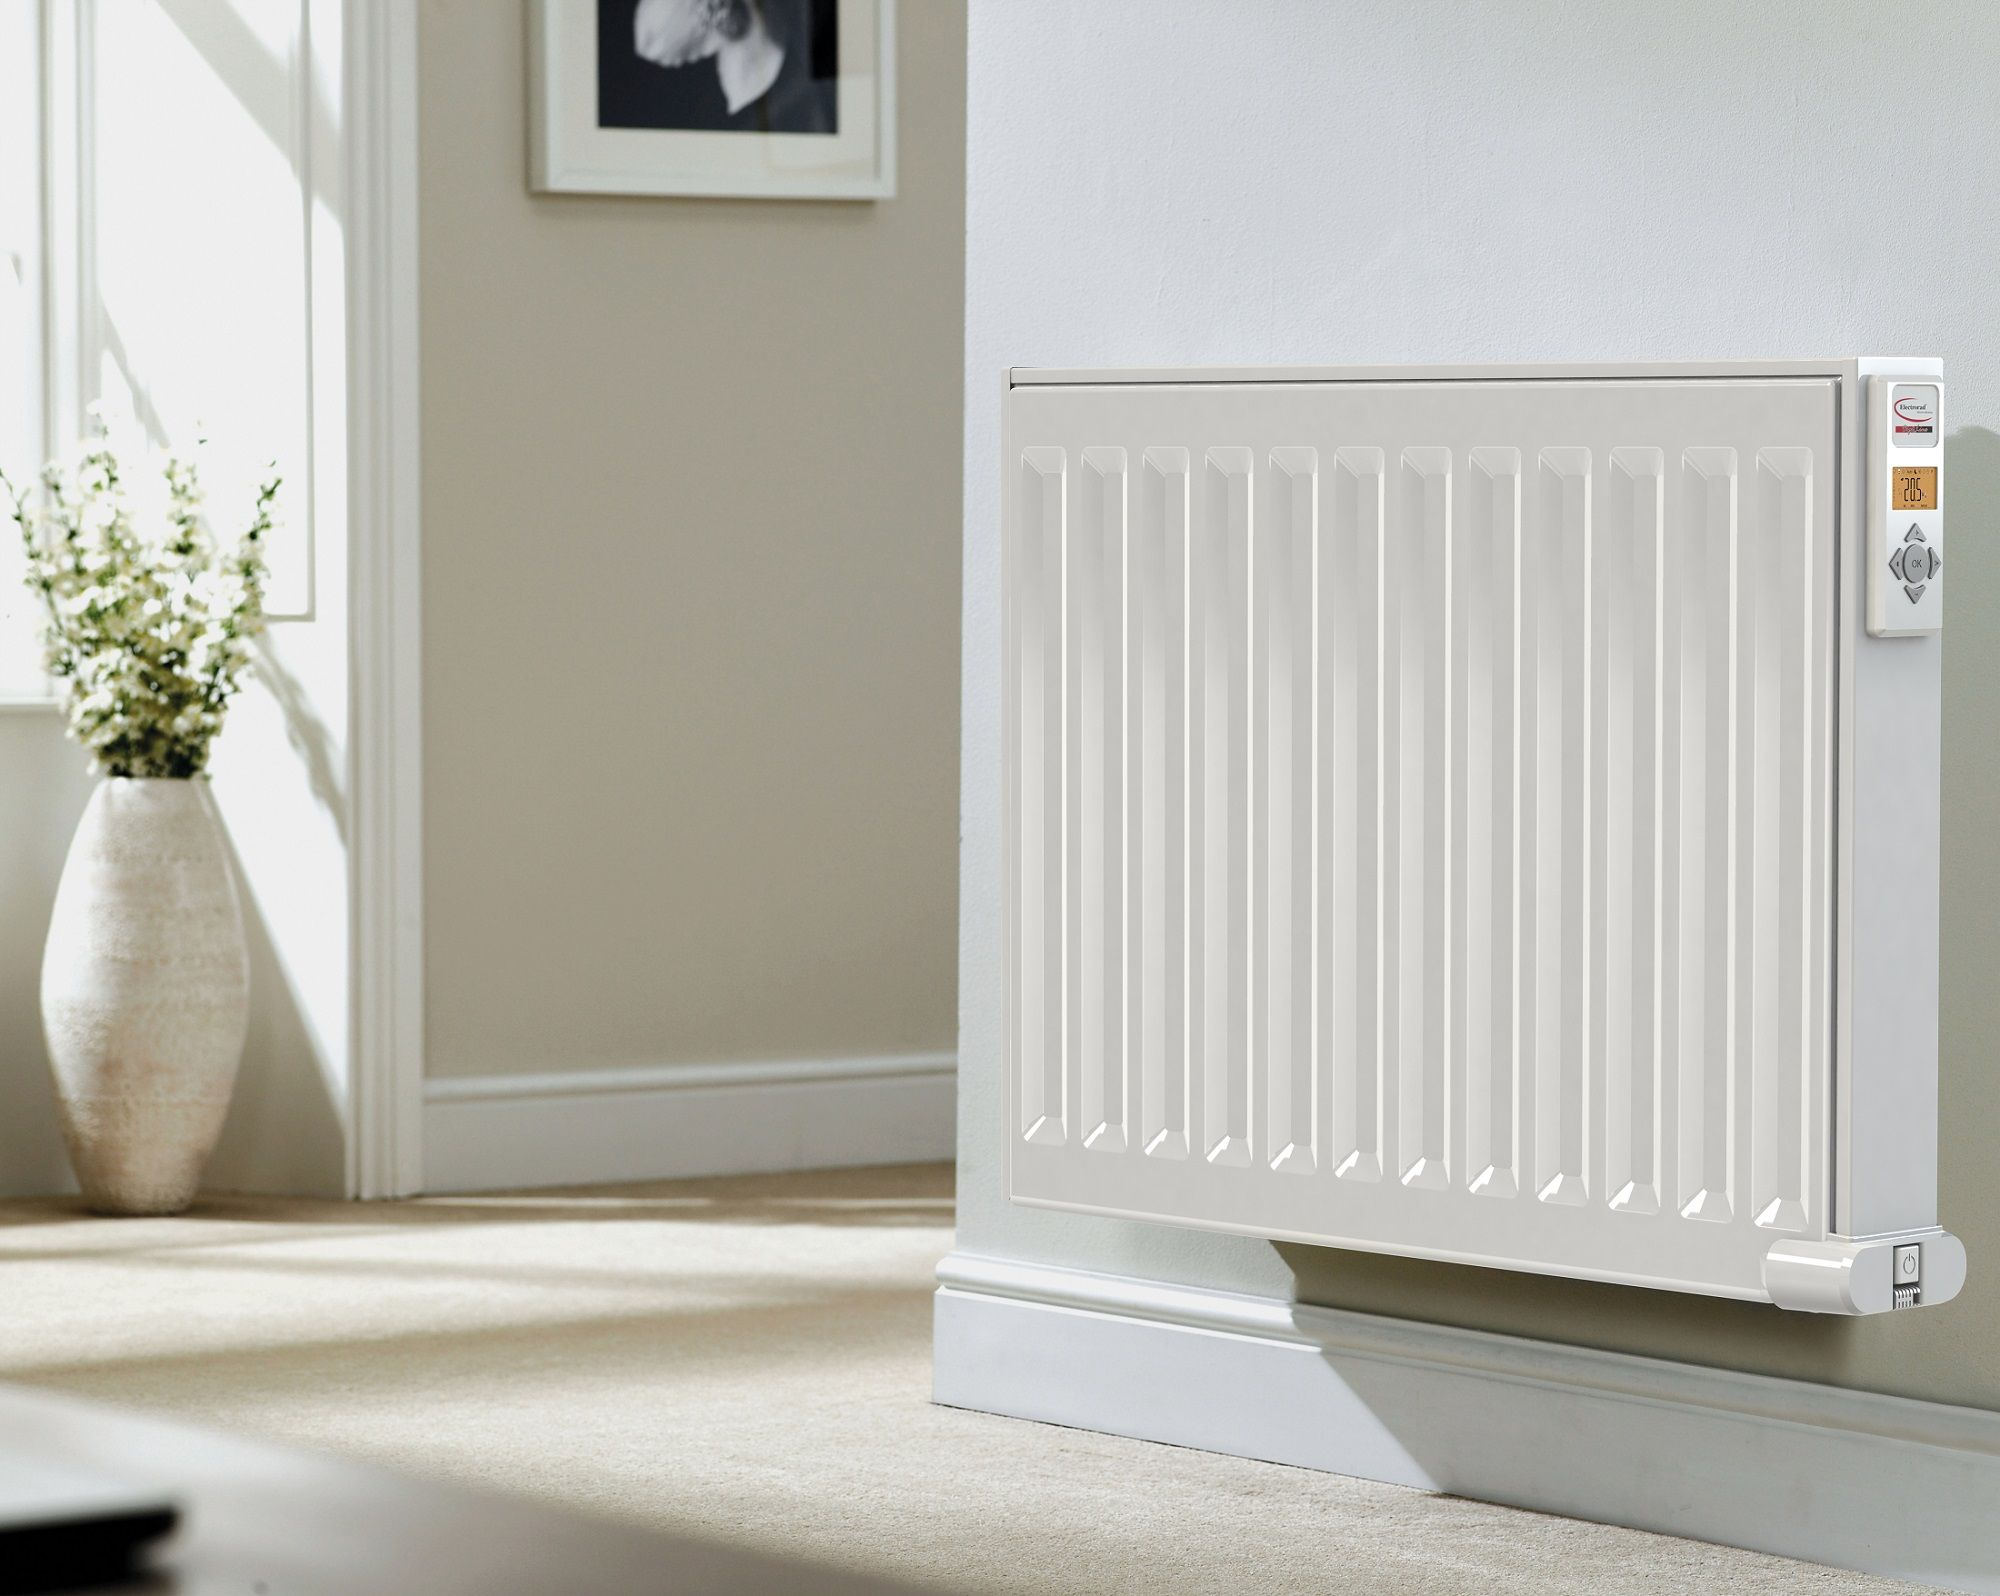 Digi Line Electric Radiators With Images Electric Radiators Radiators Green Living